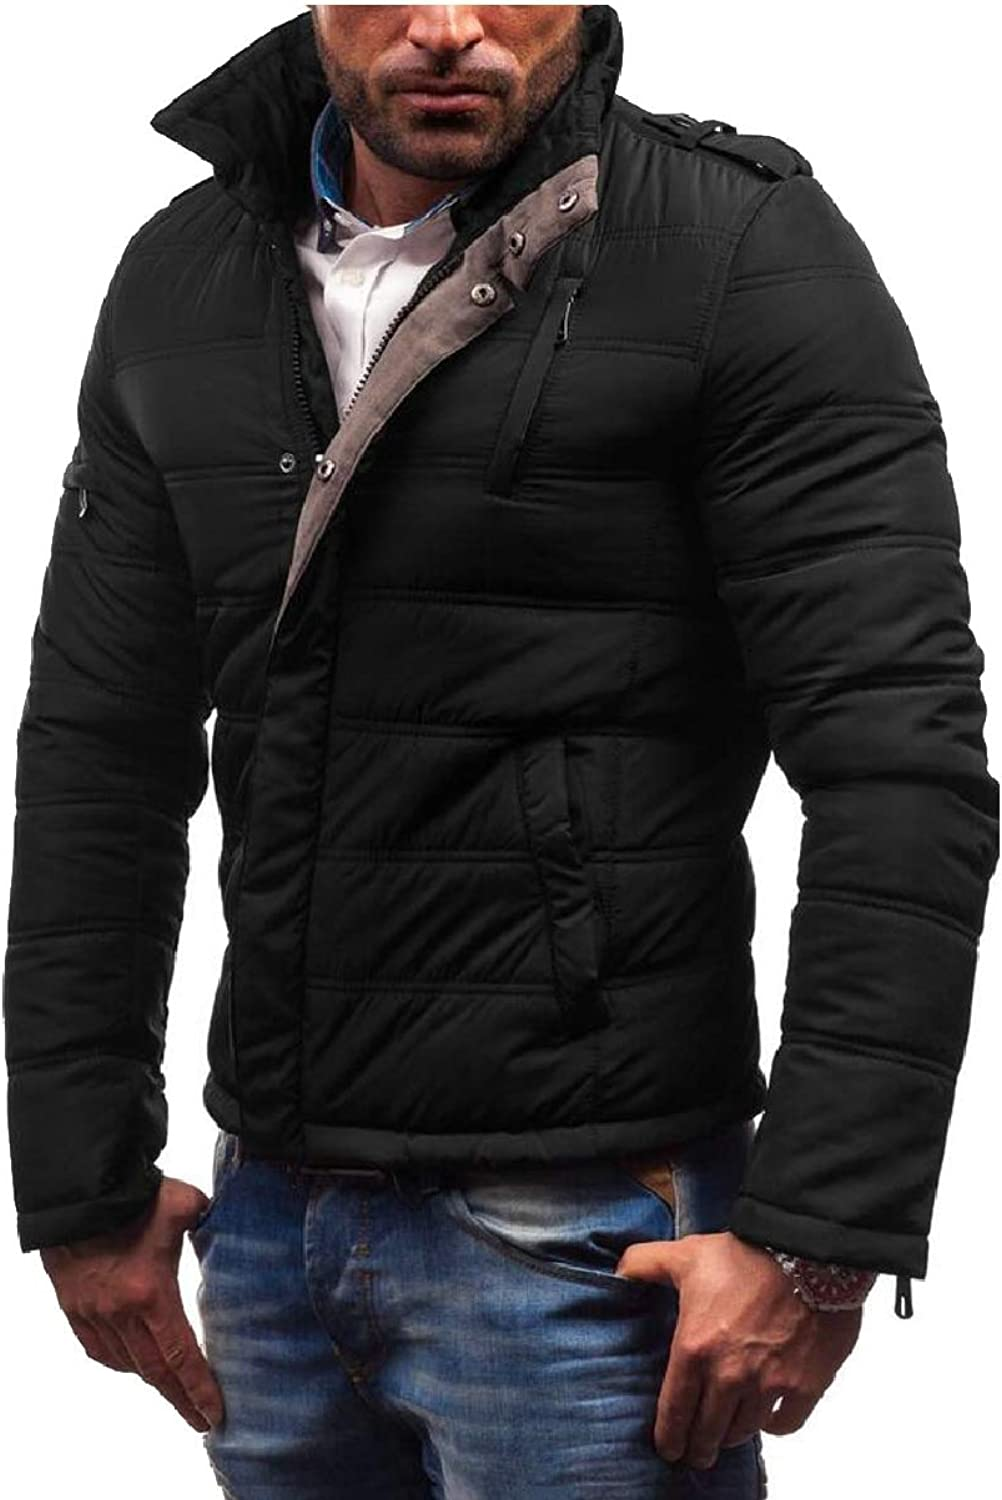 - LEISHOP Mens Winter Warm Warm Warm Waterproof Elbow Patch Outwear Padded Coat Jacket 7dc0ad